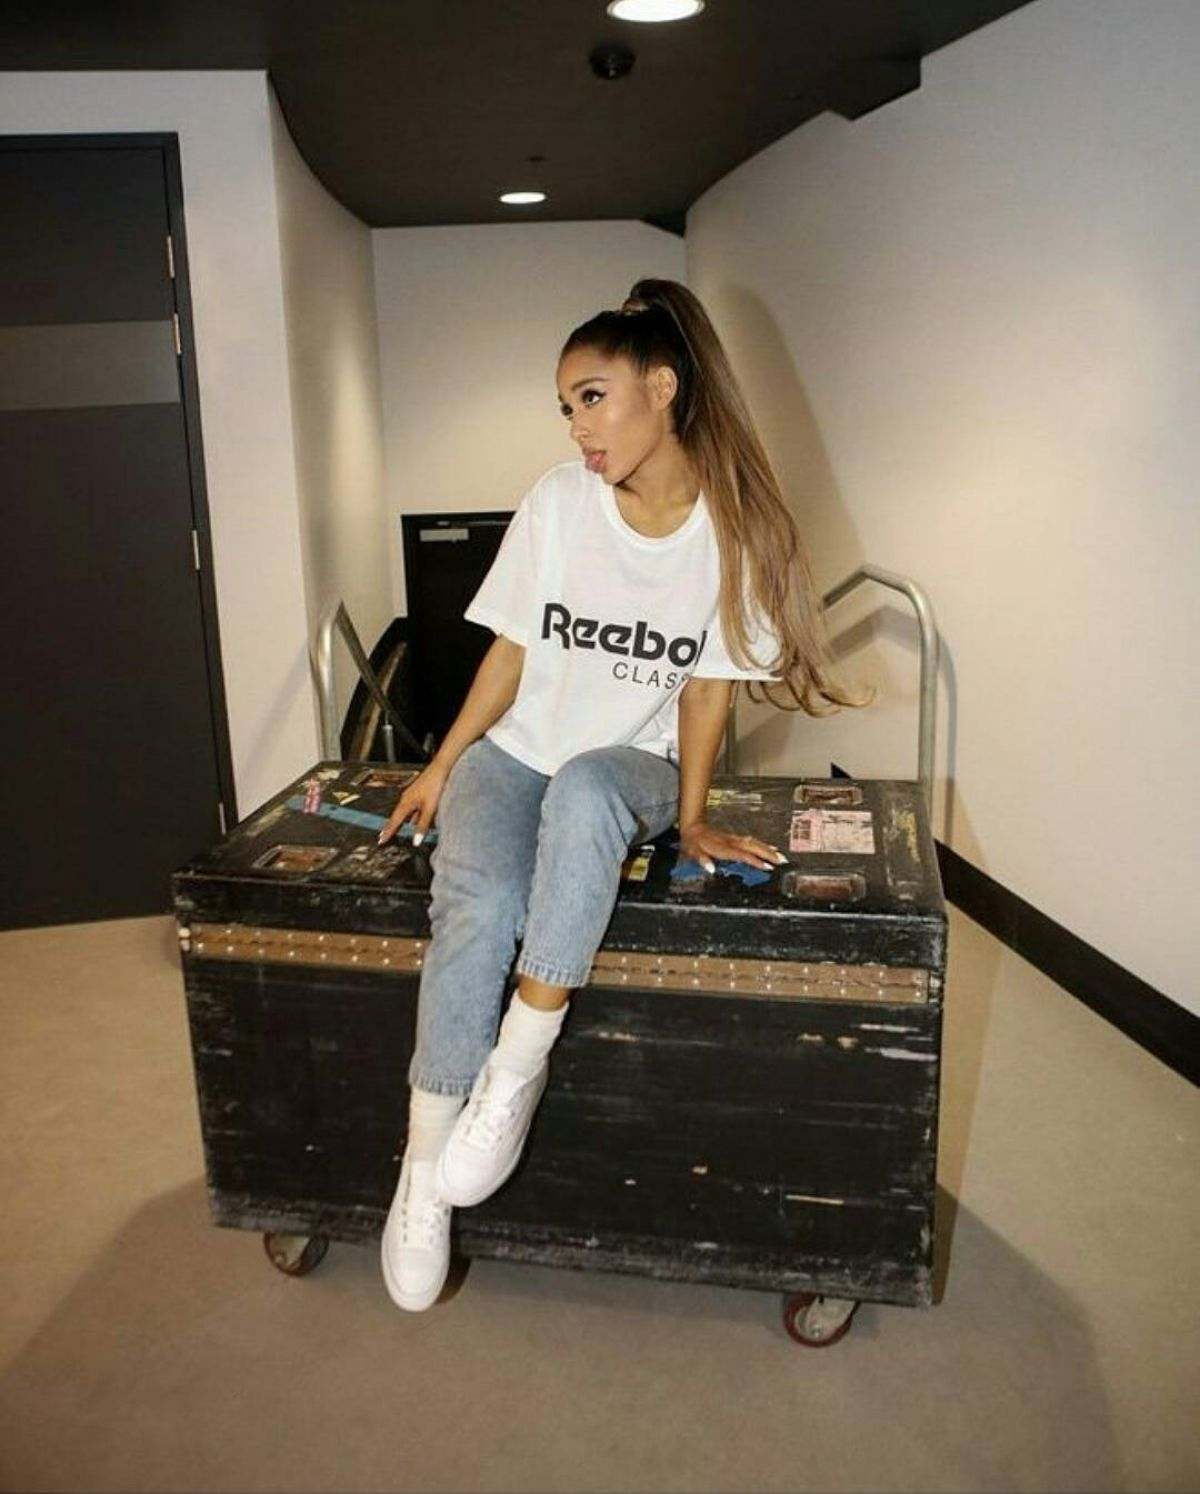 ariana-grande-for-reebok-by-alfredo-flores_109022013.jpg